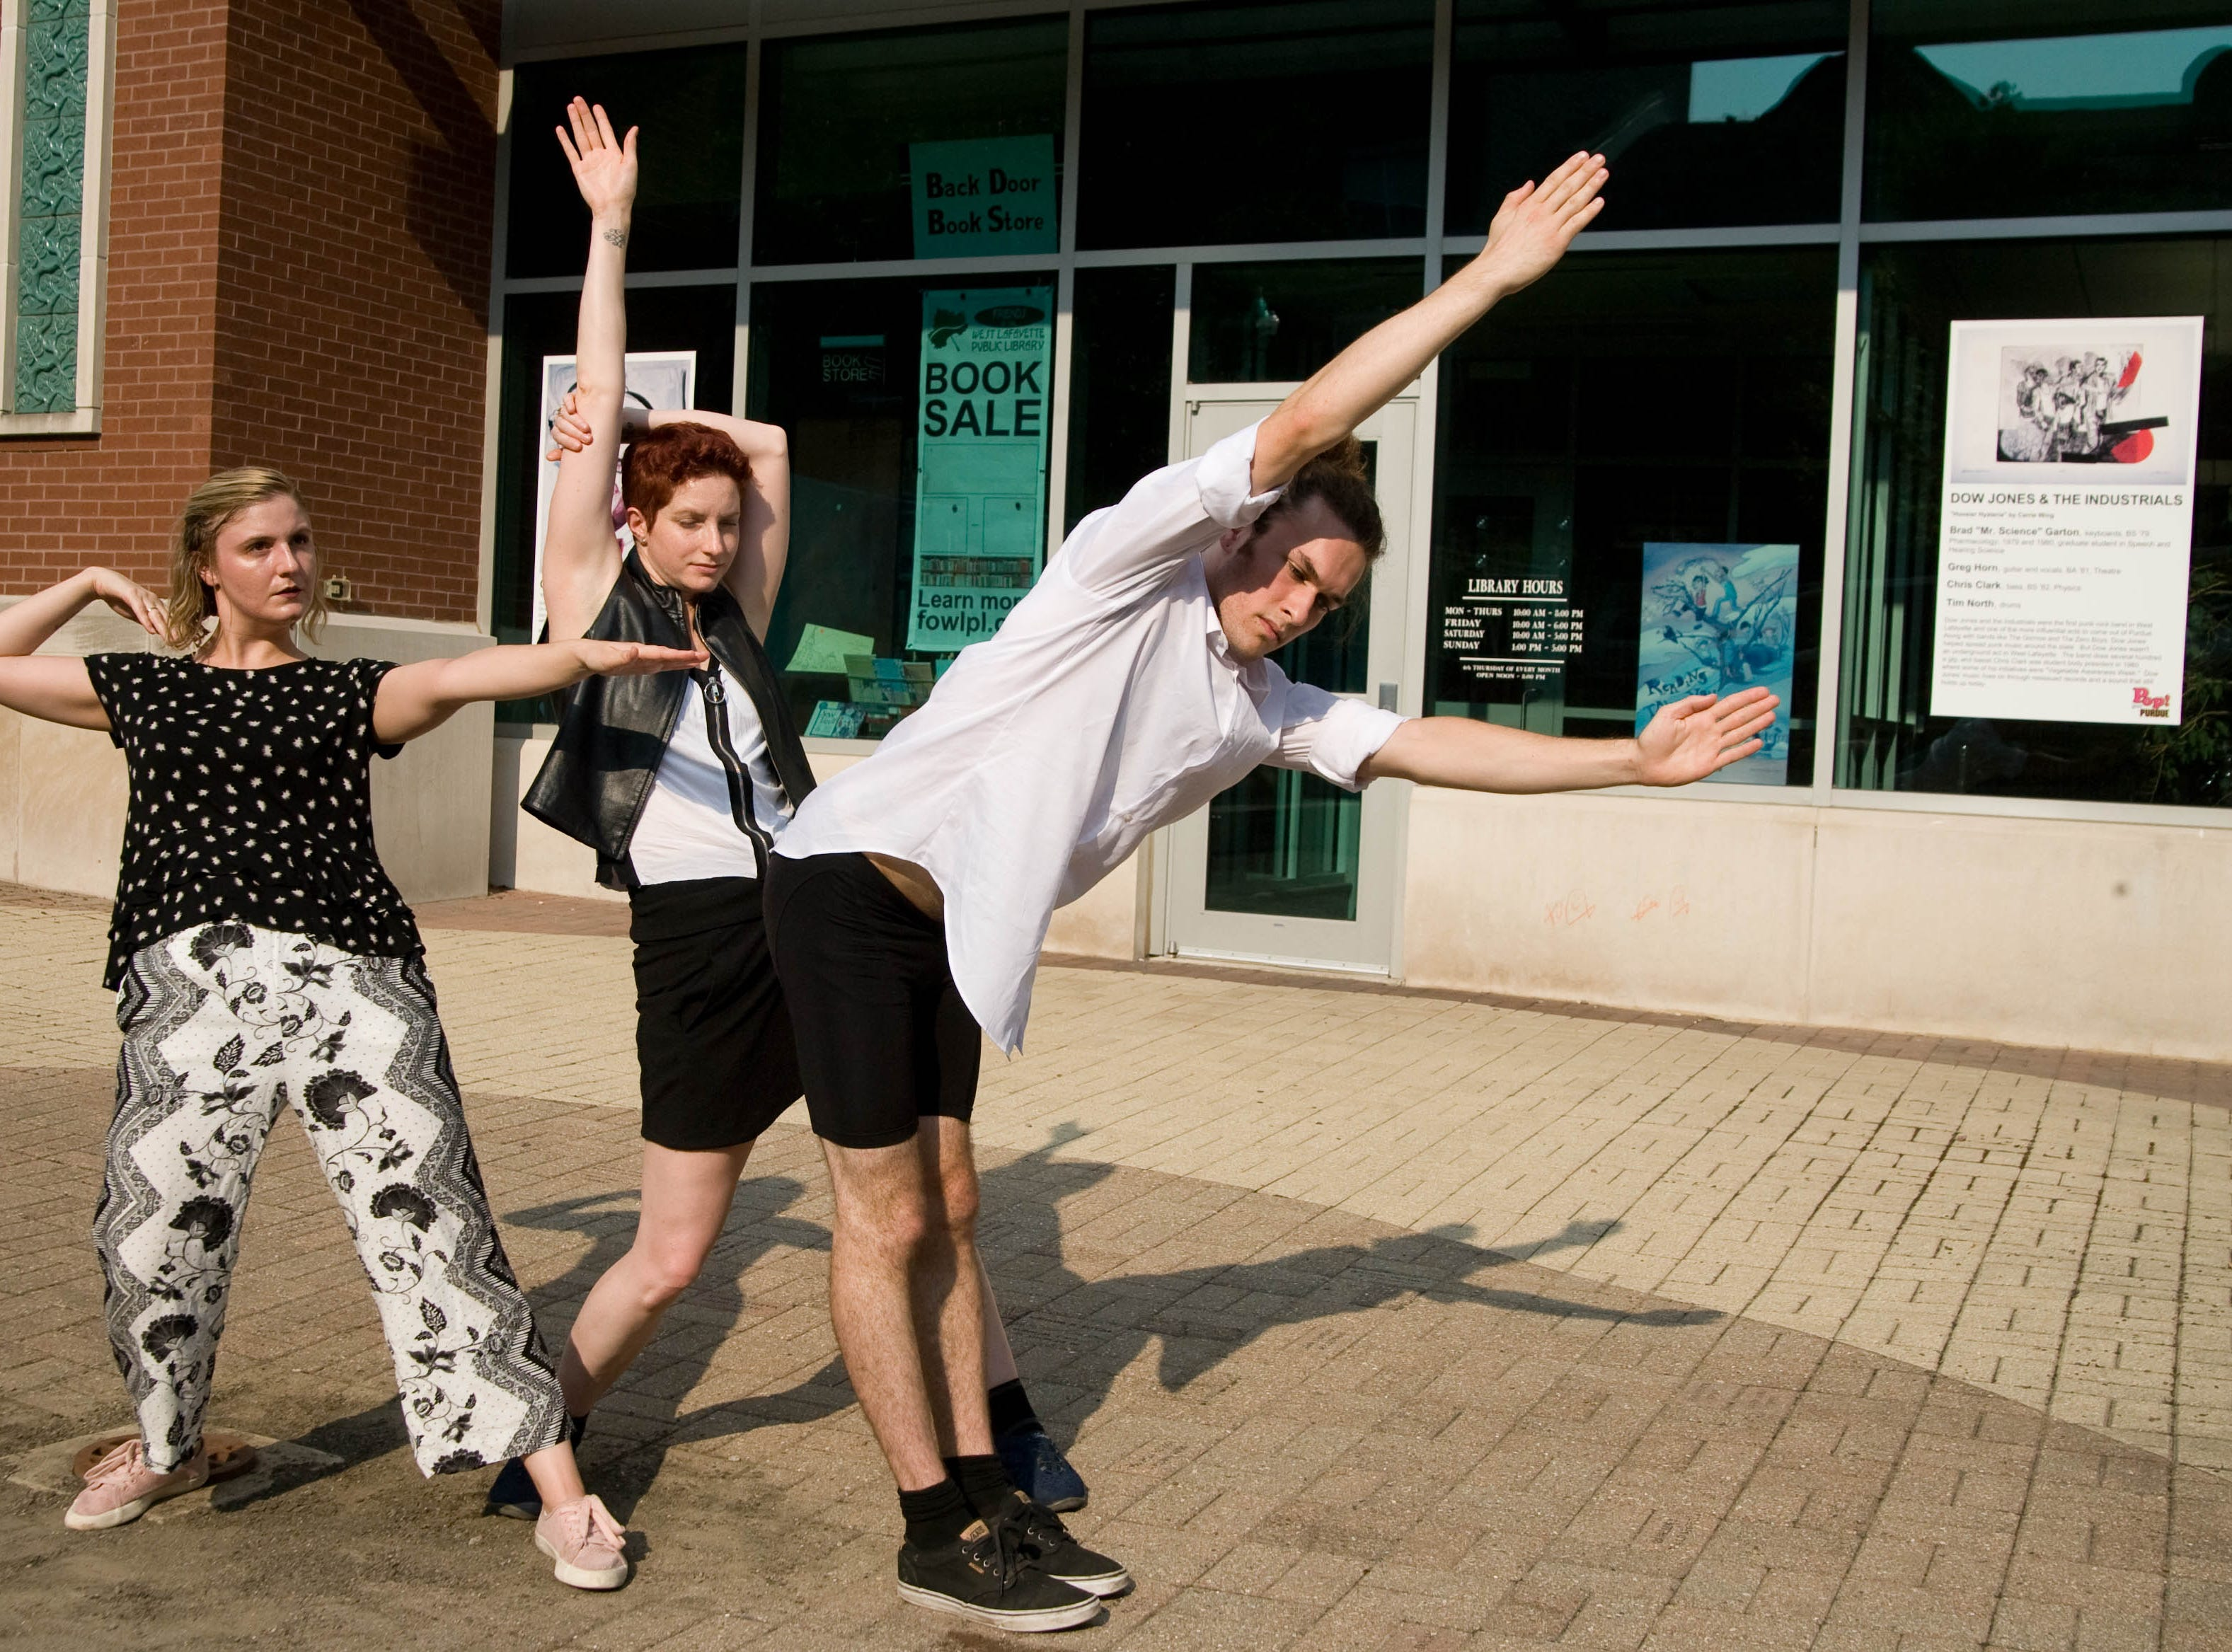 "Carrie Grant, Deborah Kull and Arlo Eitzer dance in preparation for their public performance of ""April is the Cruelest Month"" A dance work in 8 parts on August 24th and 25th at the West Lafayette public library."